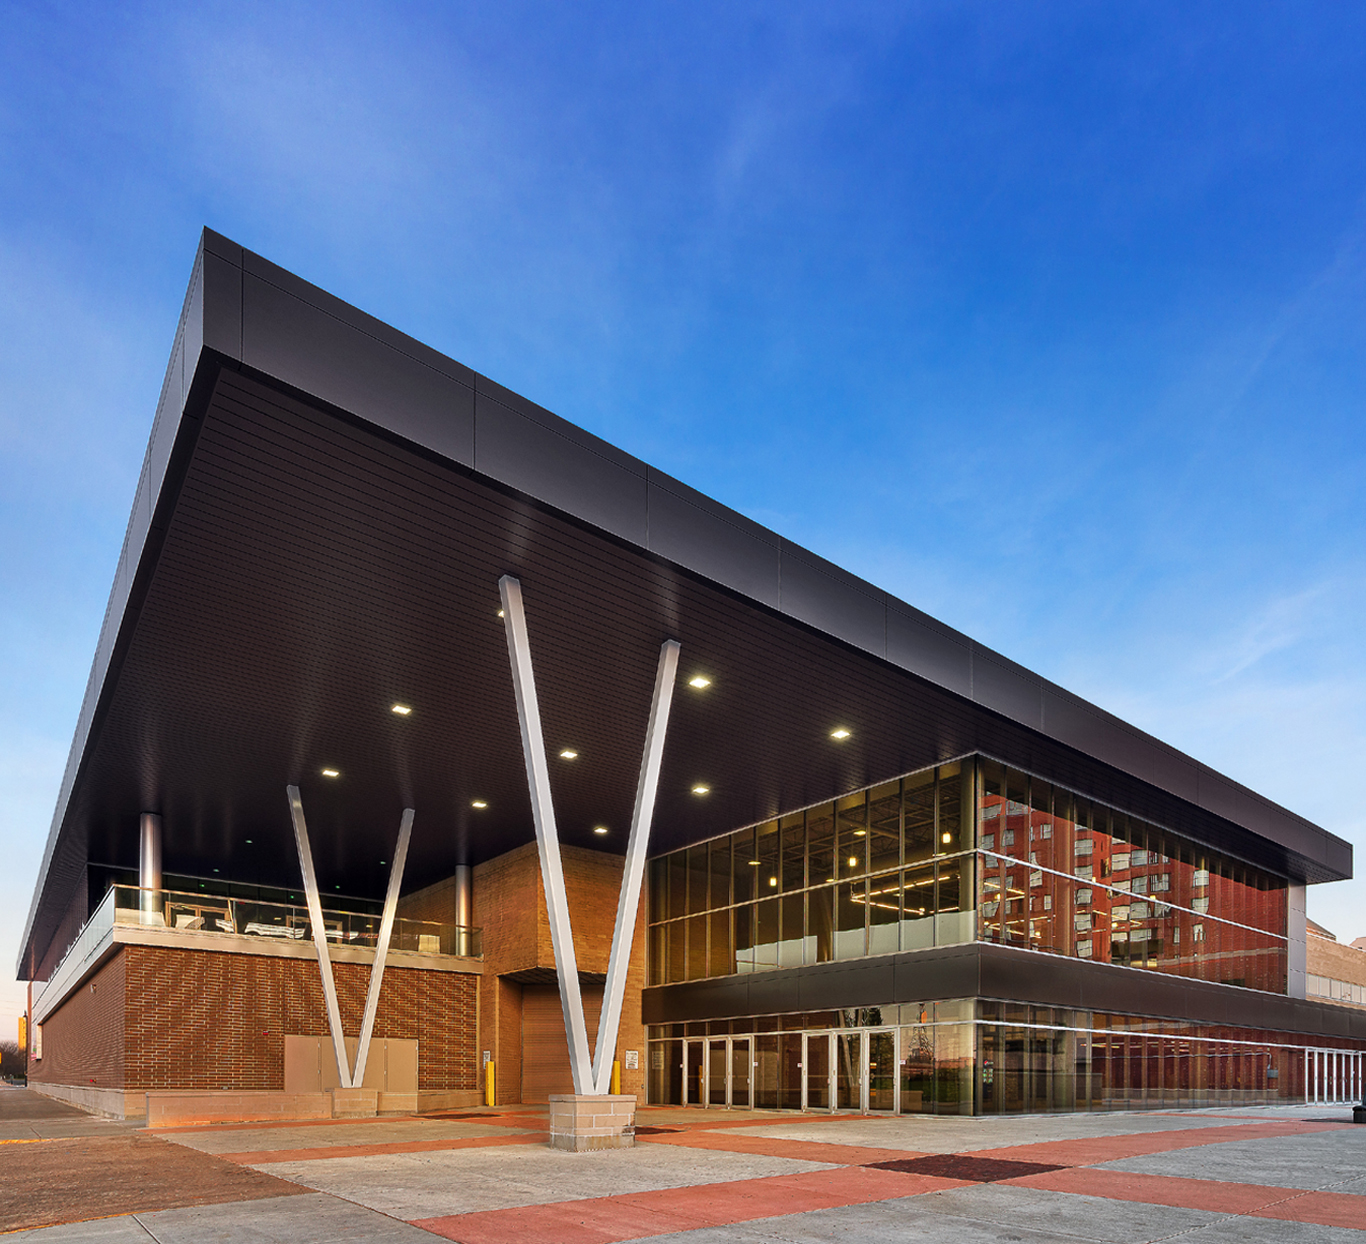 Evan Lloyd Architects provided extensive architecture services for the Bank of Springfield Convention Center in Springfield, Illinois, with a complete building renovation. We provided design solutions, color renderings, construction documents, and construction cost estimates